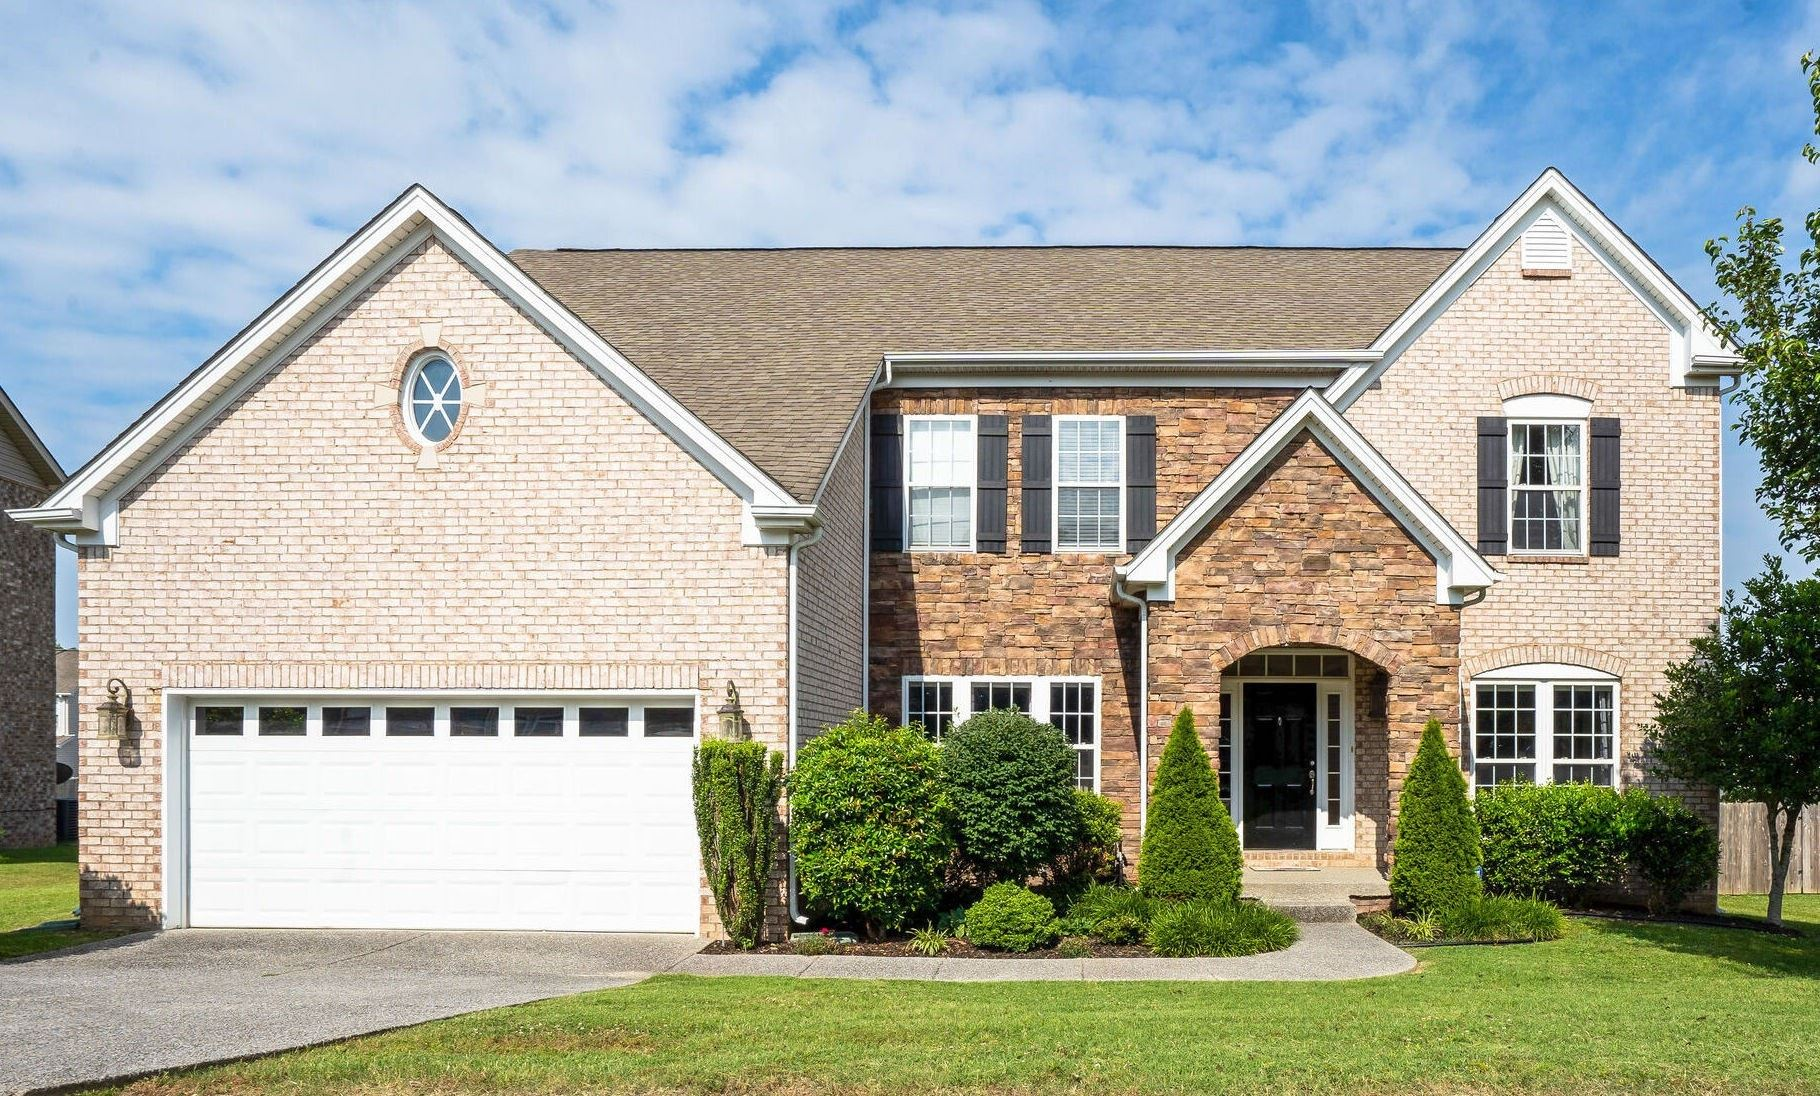 Photo of 1009 Queens Pl, Spring Hill, TN 37174 (MLS # 2292543)